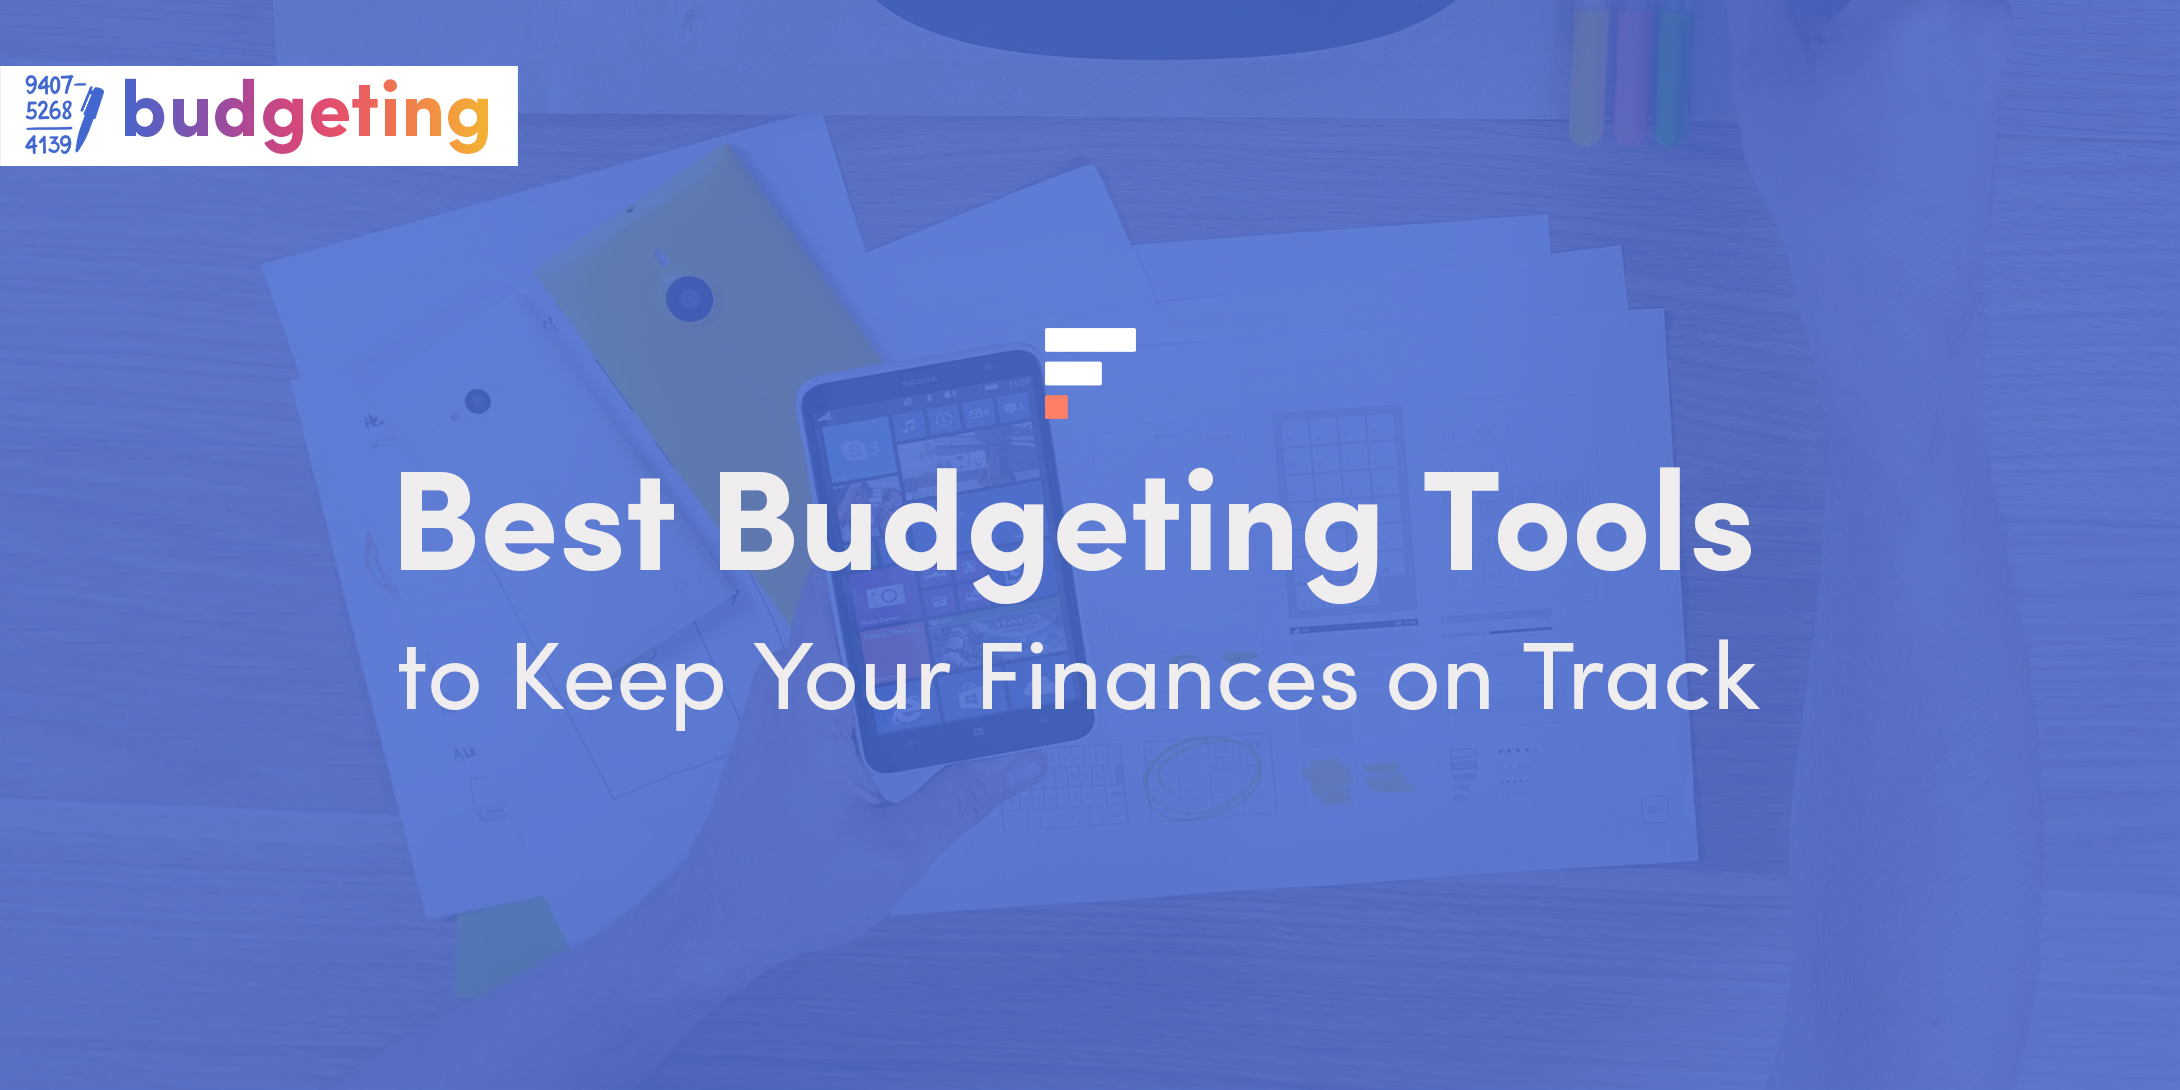 5 Best Budgeting Tools to Keep Your Finances on Track in 2021